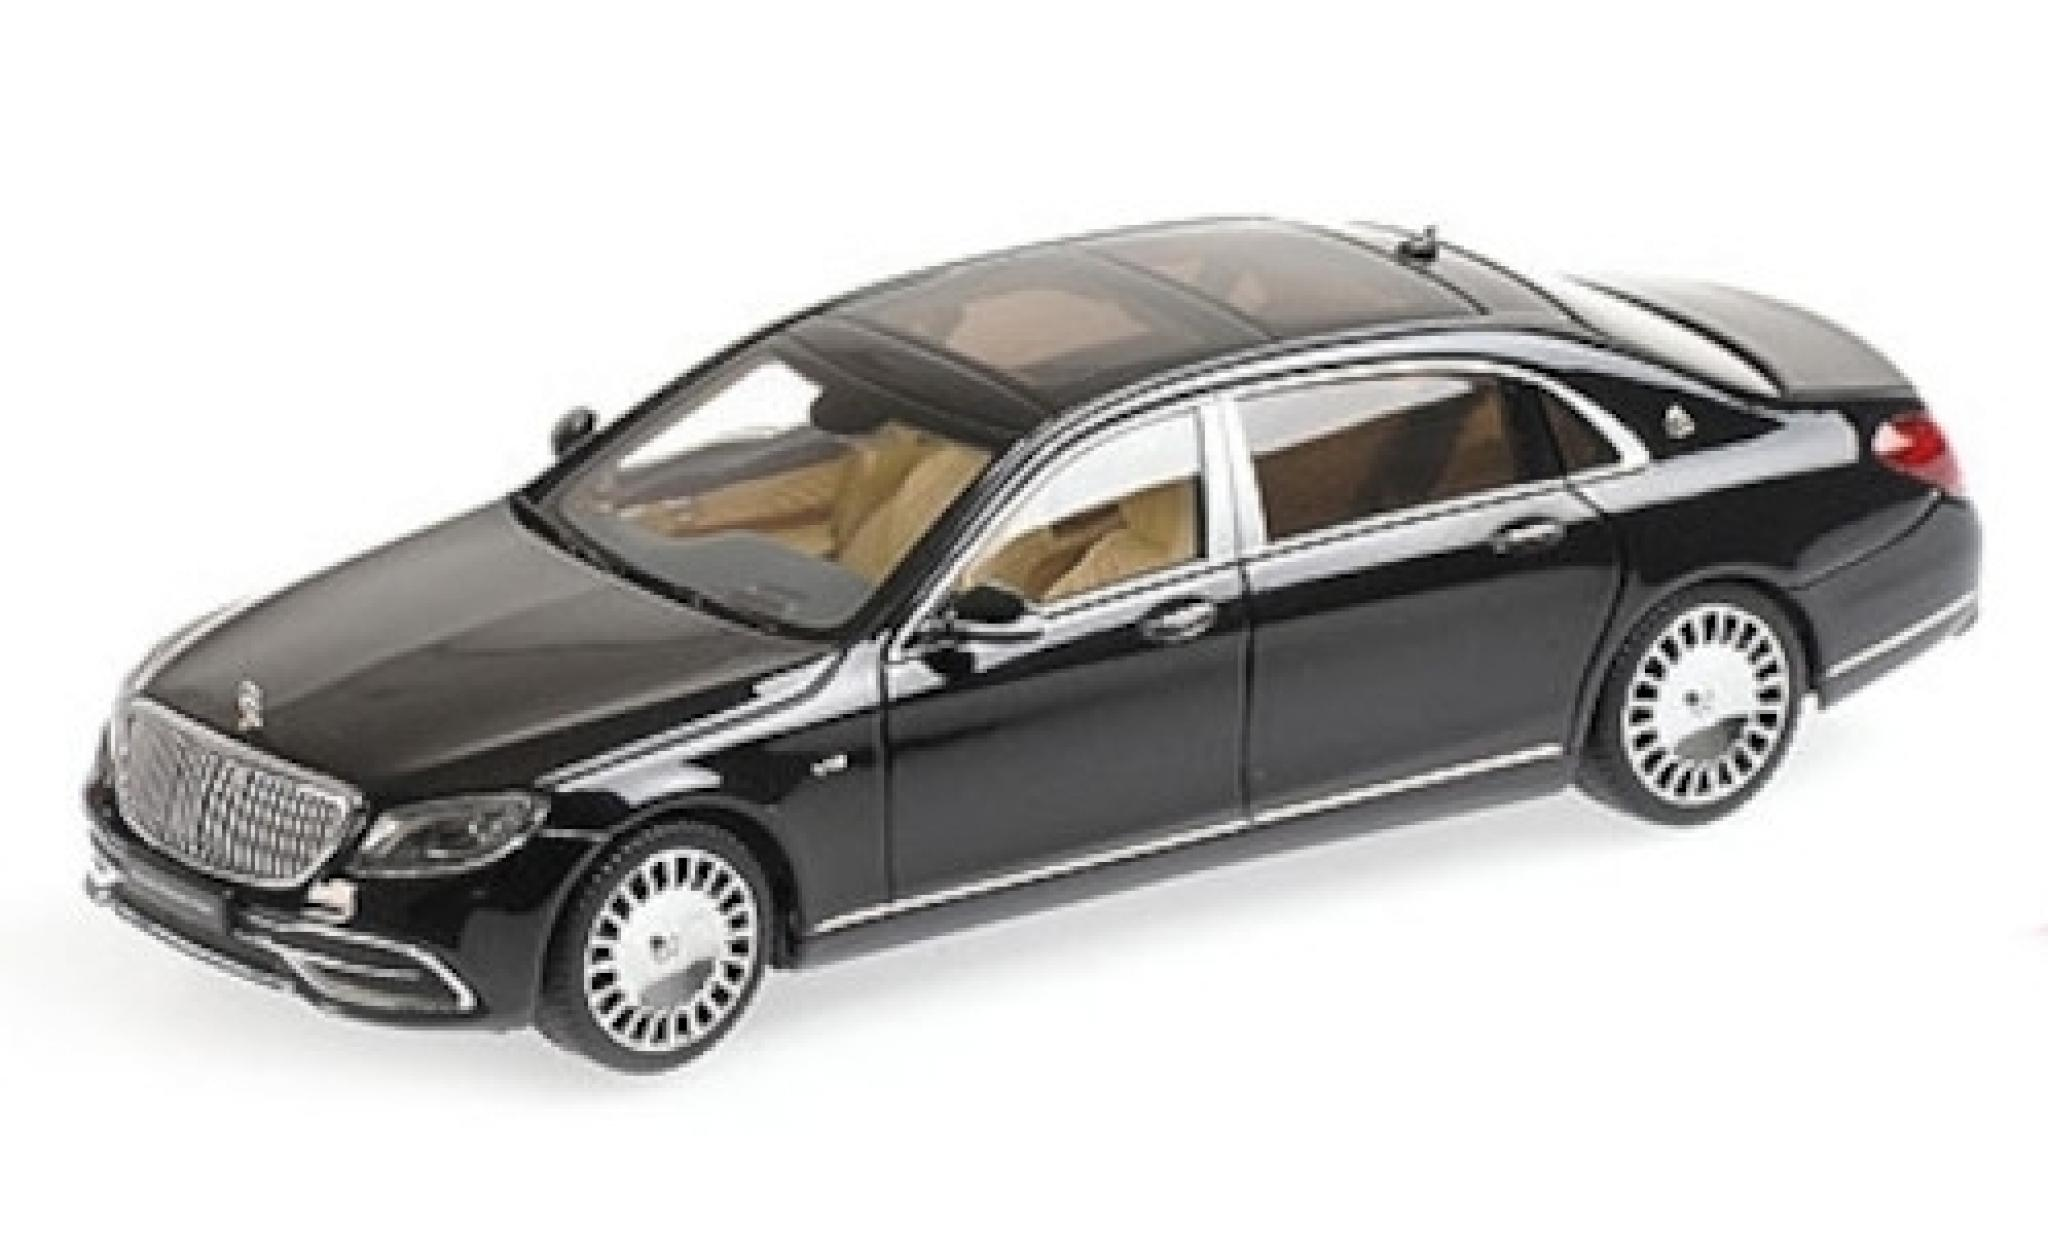 Mercedes CLA 1/43 Almost Real Maybach Classe S metallise noire 2019